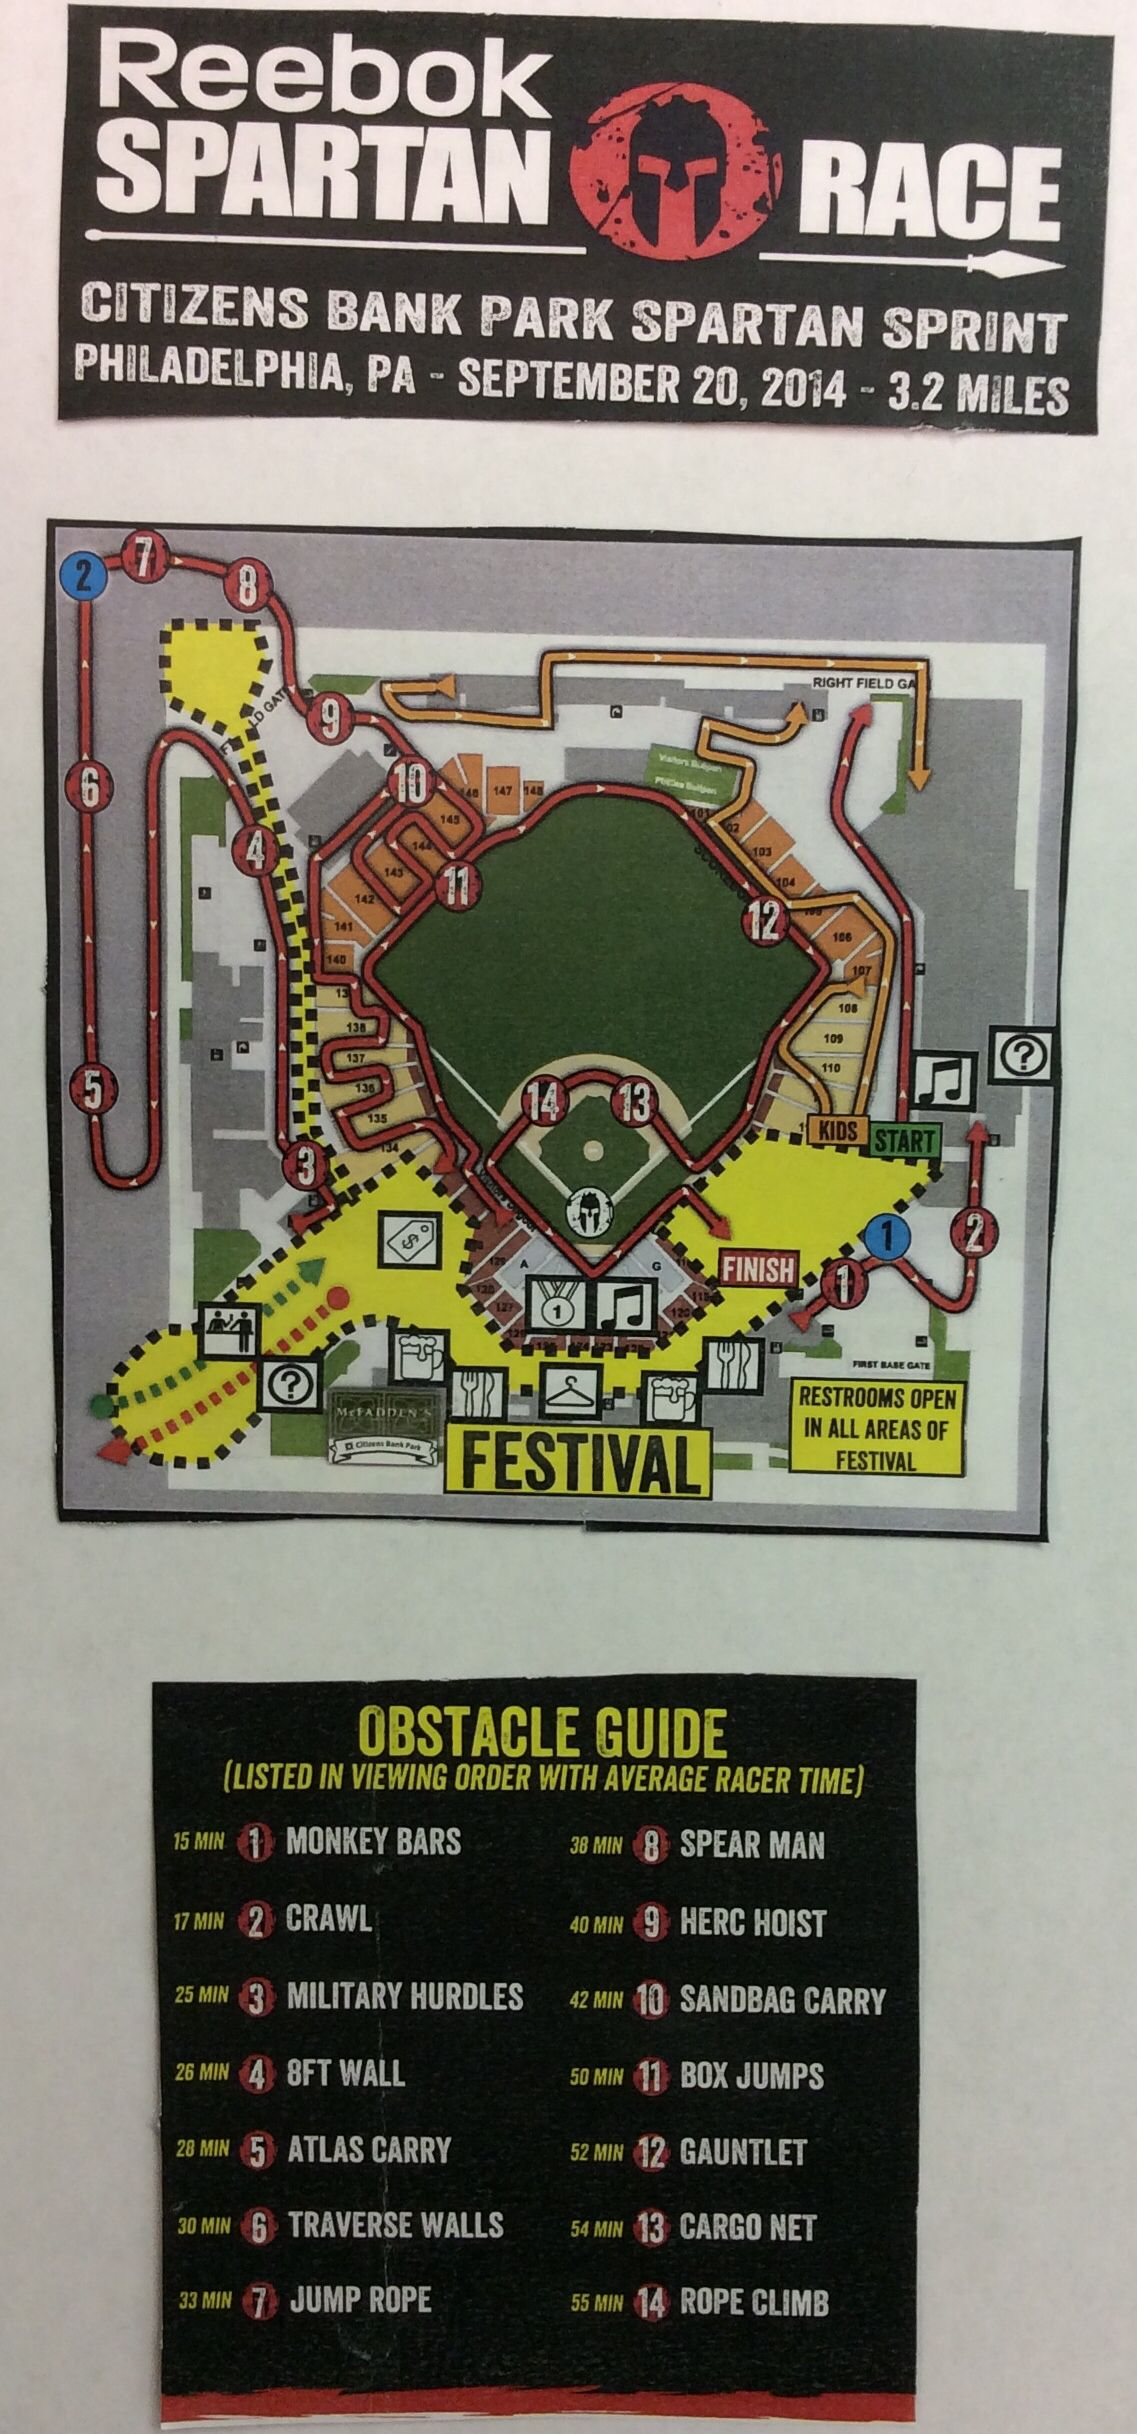 Spartan Race obstacle guide and course for Citizen's Bank